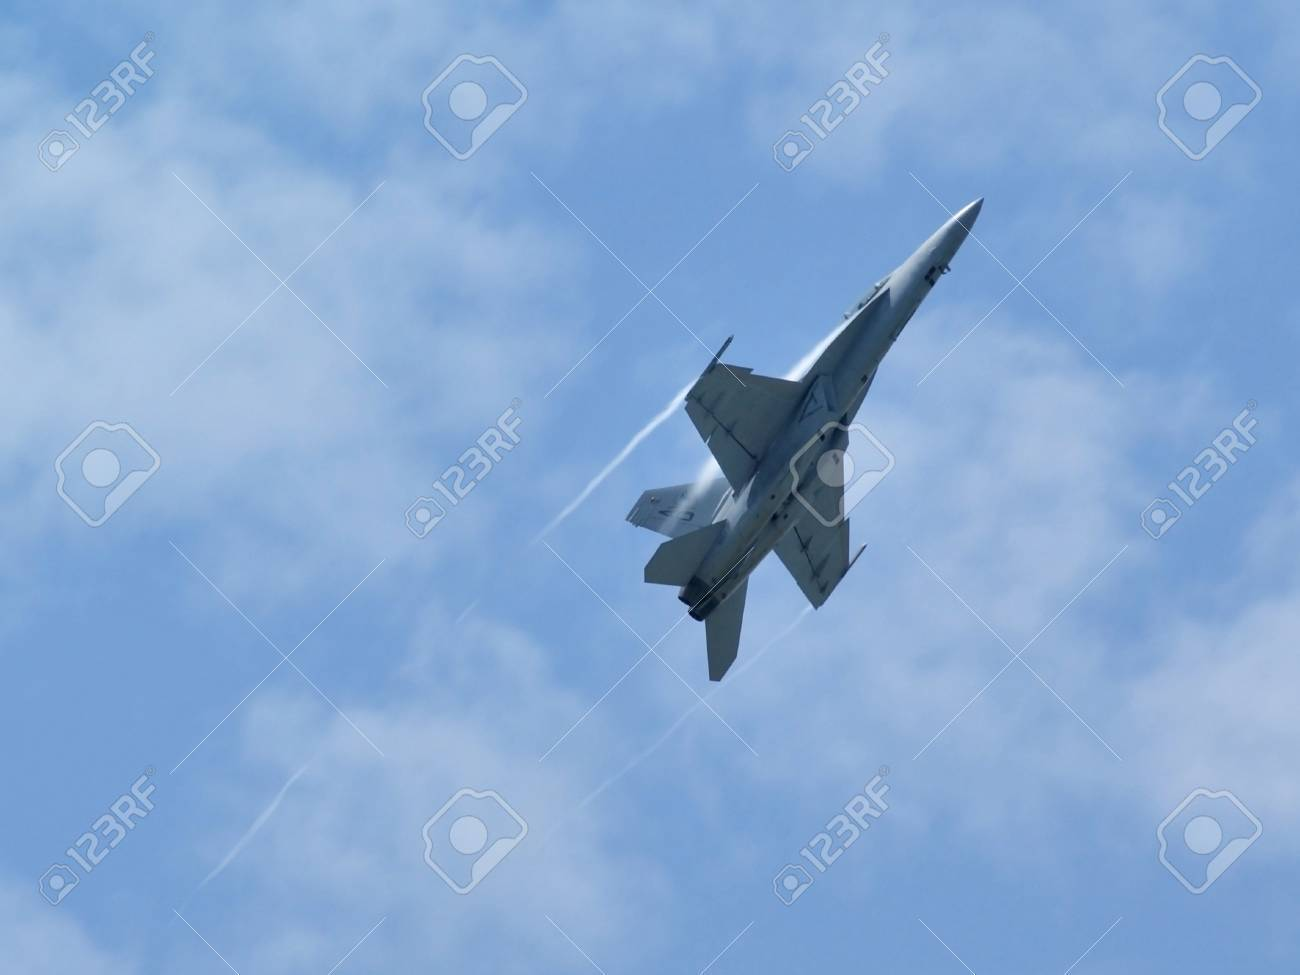 View of a jet fighter climbing with trails visible. Stock Photo - 8669518